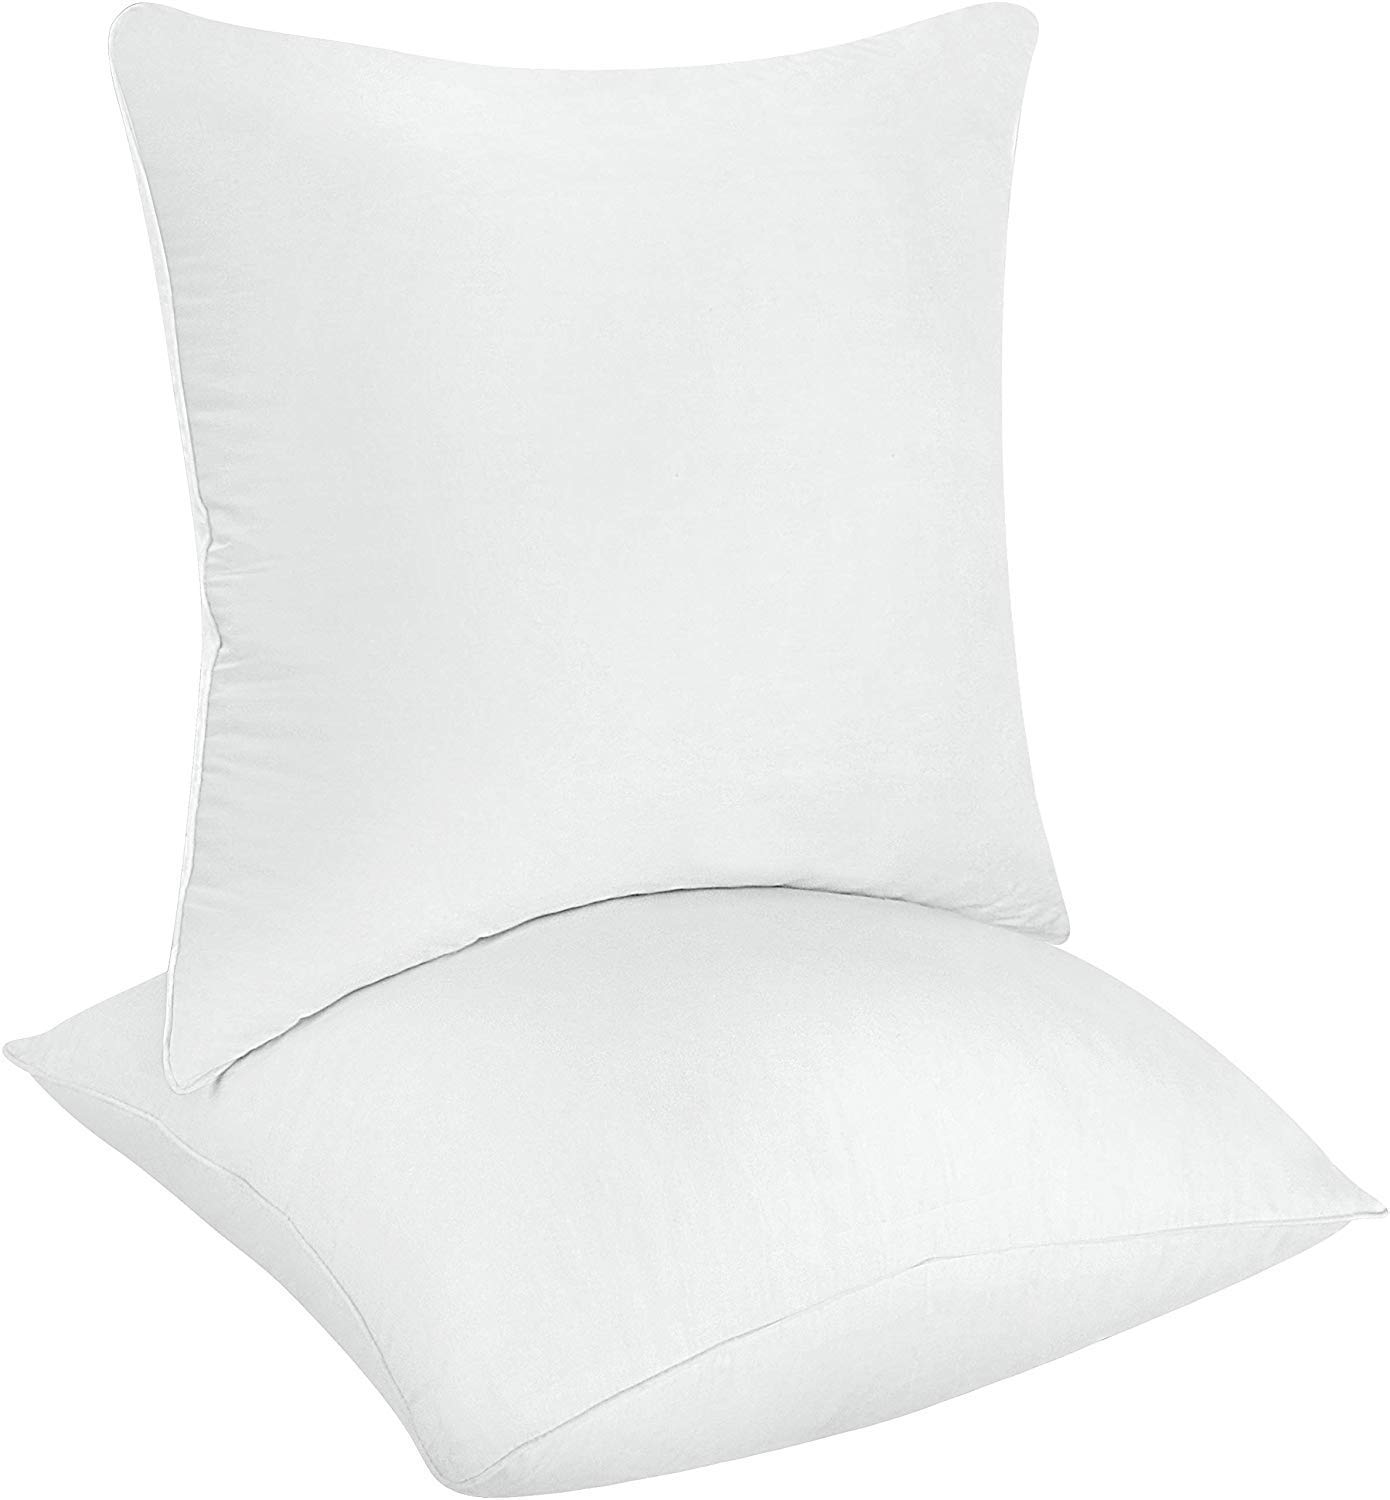 Utopia Bedding Throw Pillows Insert (Pack of 2, White) – 12 x 12 Inches Bed and Couch Pillows – Indoor Decorative Pillows